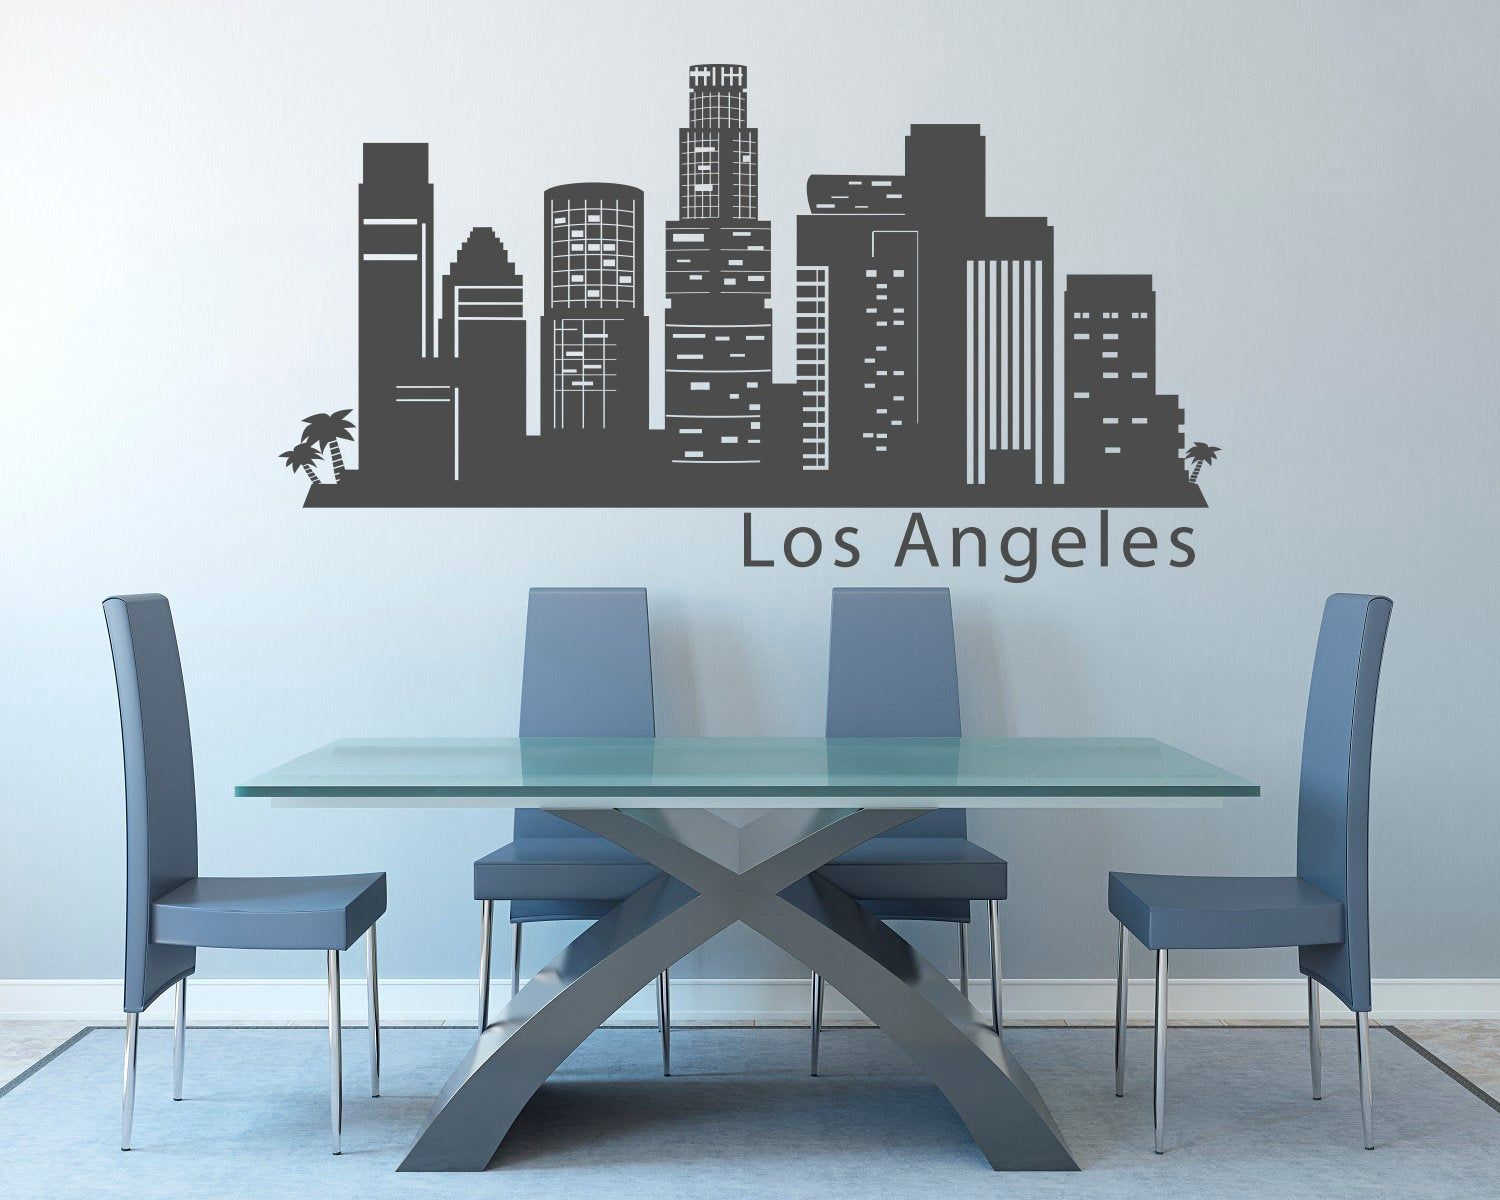 Los Angeles California Skyline Wall Decal Sticker Art Vinyl Etsy In 2020 Wall Decal Sticker Sticker Art Wall Decals